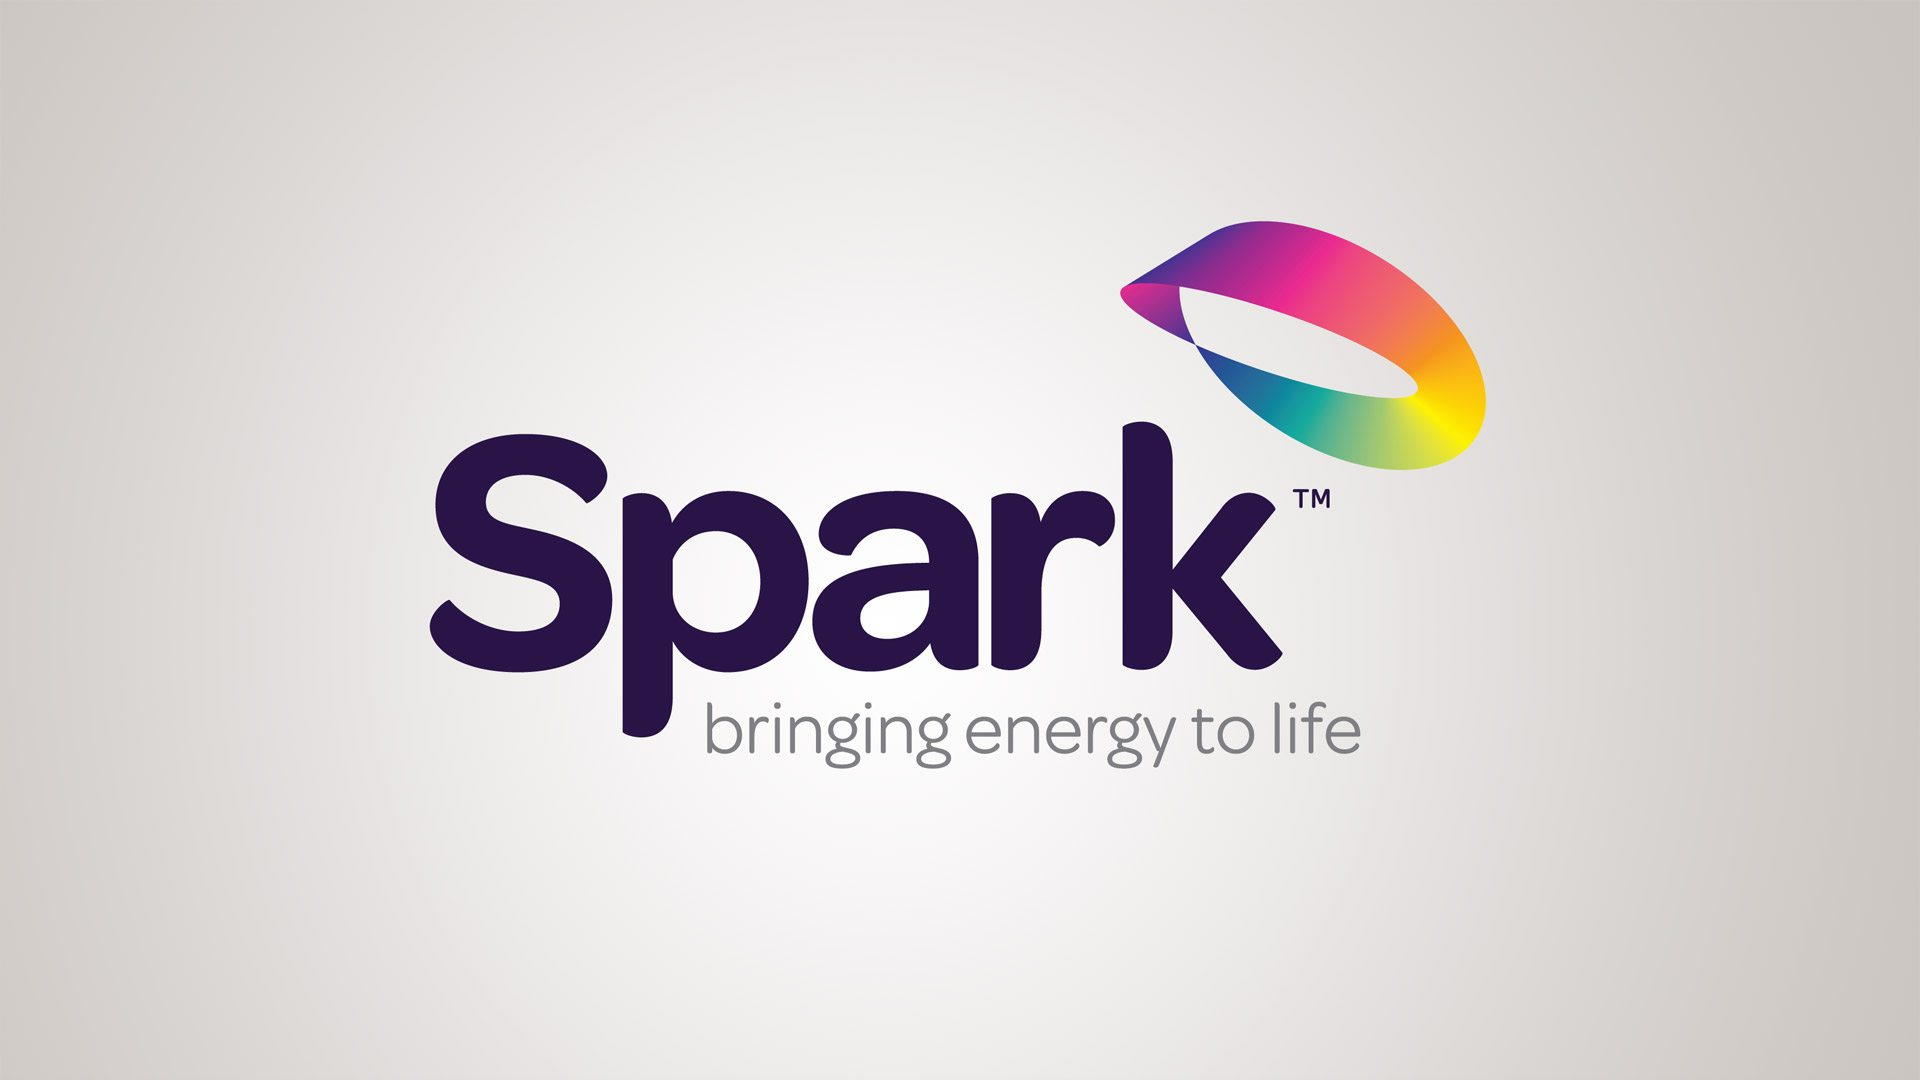 Spark Energy Customer Service Is Crucial To Your Business. Learn Why!